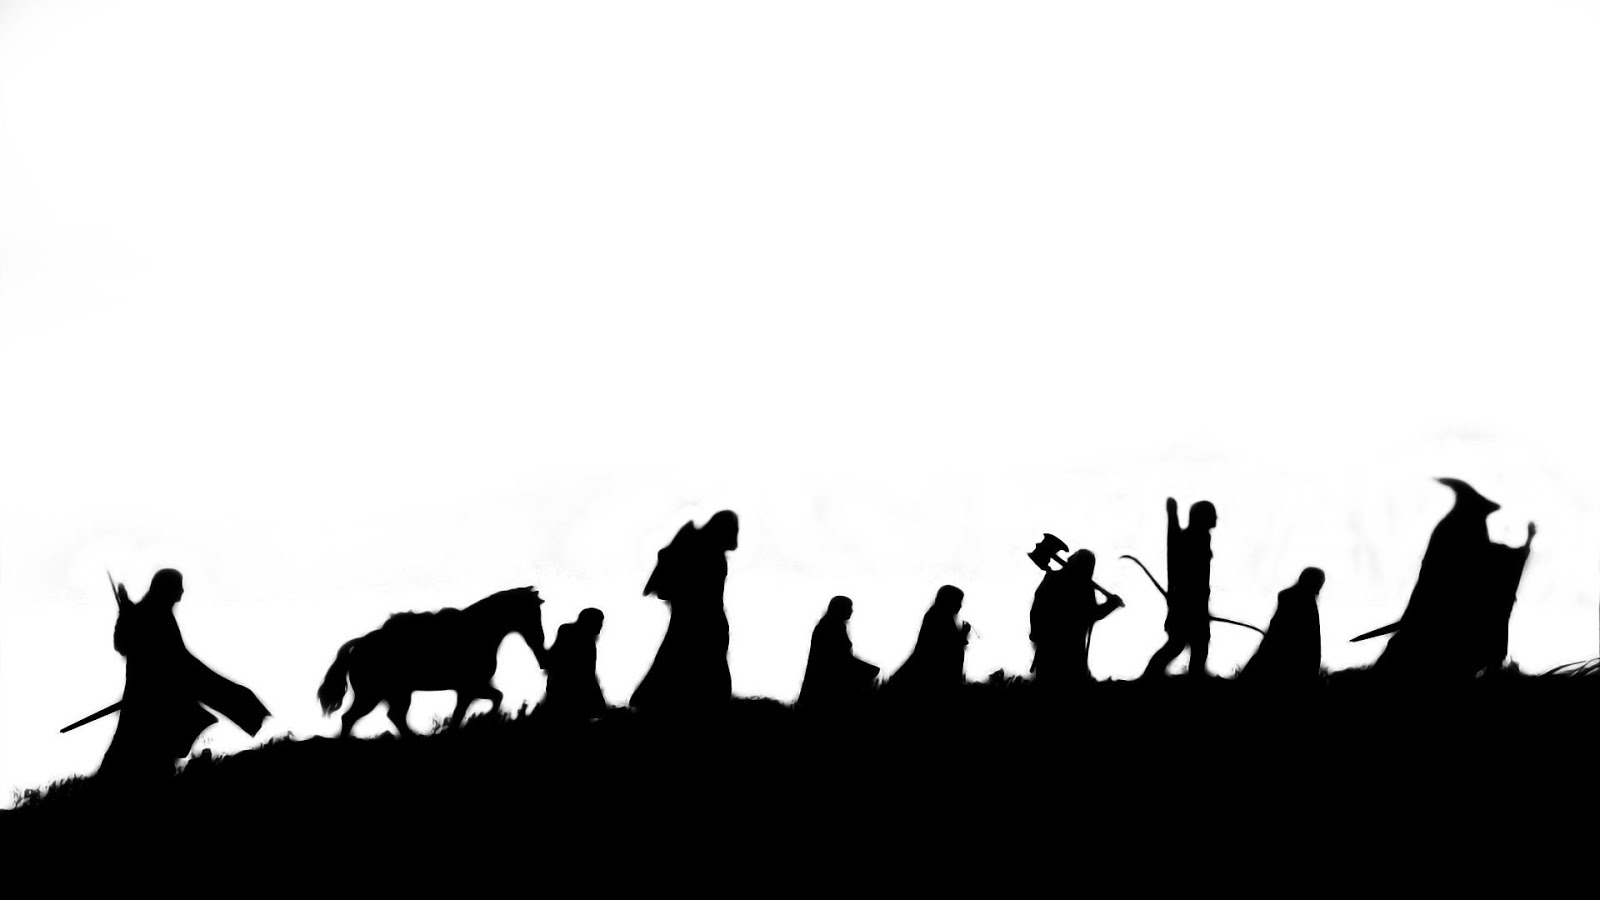 Lord Of The Rings clipart black and white #2